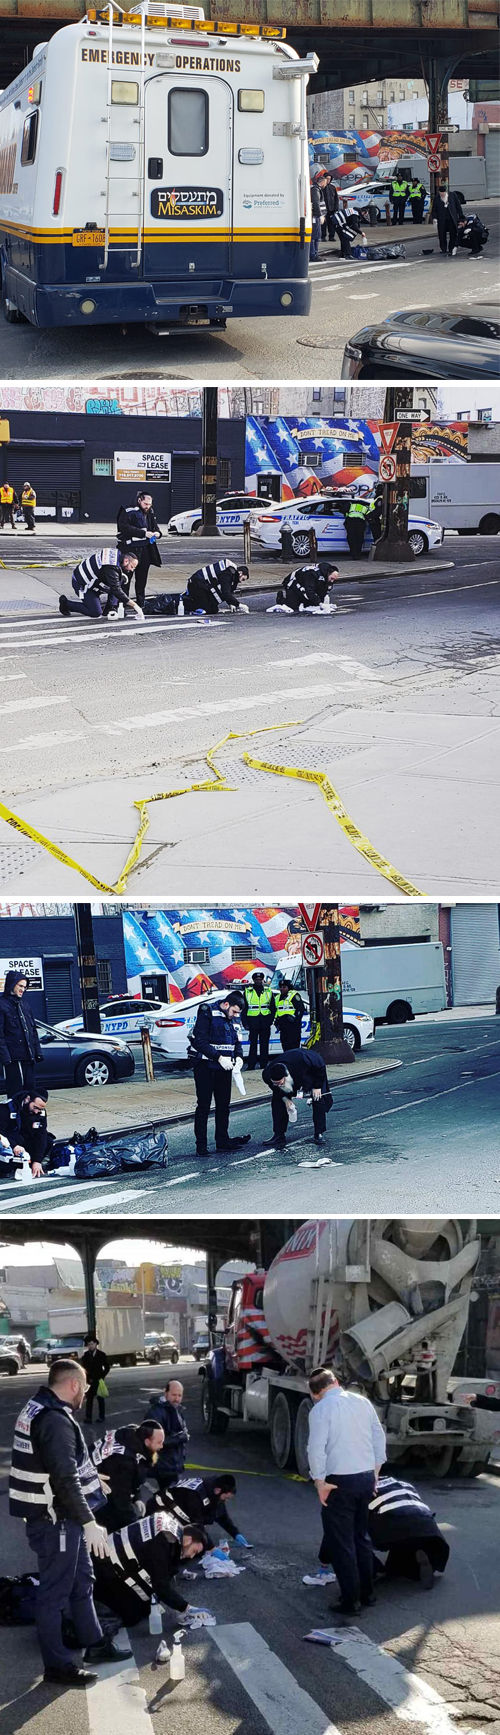 TRAGEDY IN BORO PARK: Elderly Jewish Man Struck & Killed By Truck on McDonald Ave